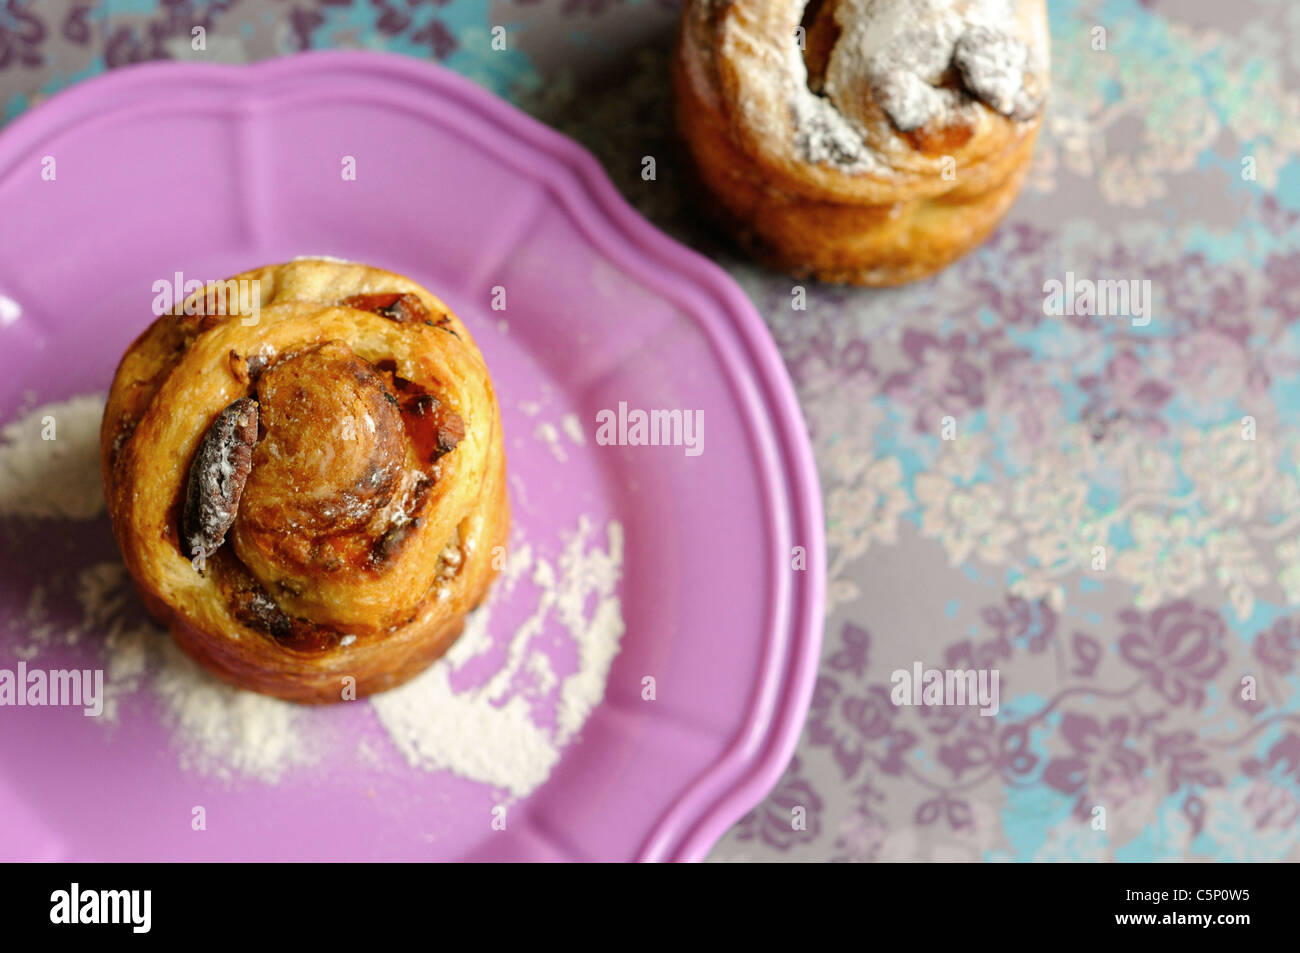 Pecan and  apricots buns on a pinky plate - Stock Image